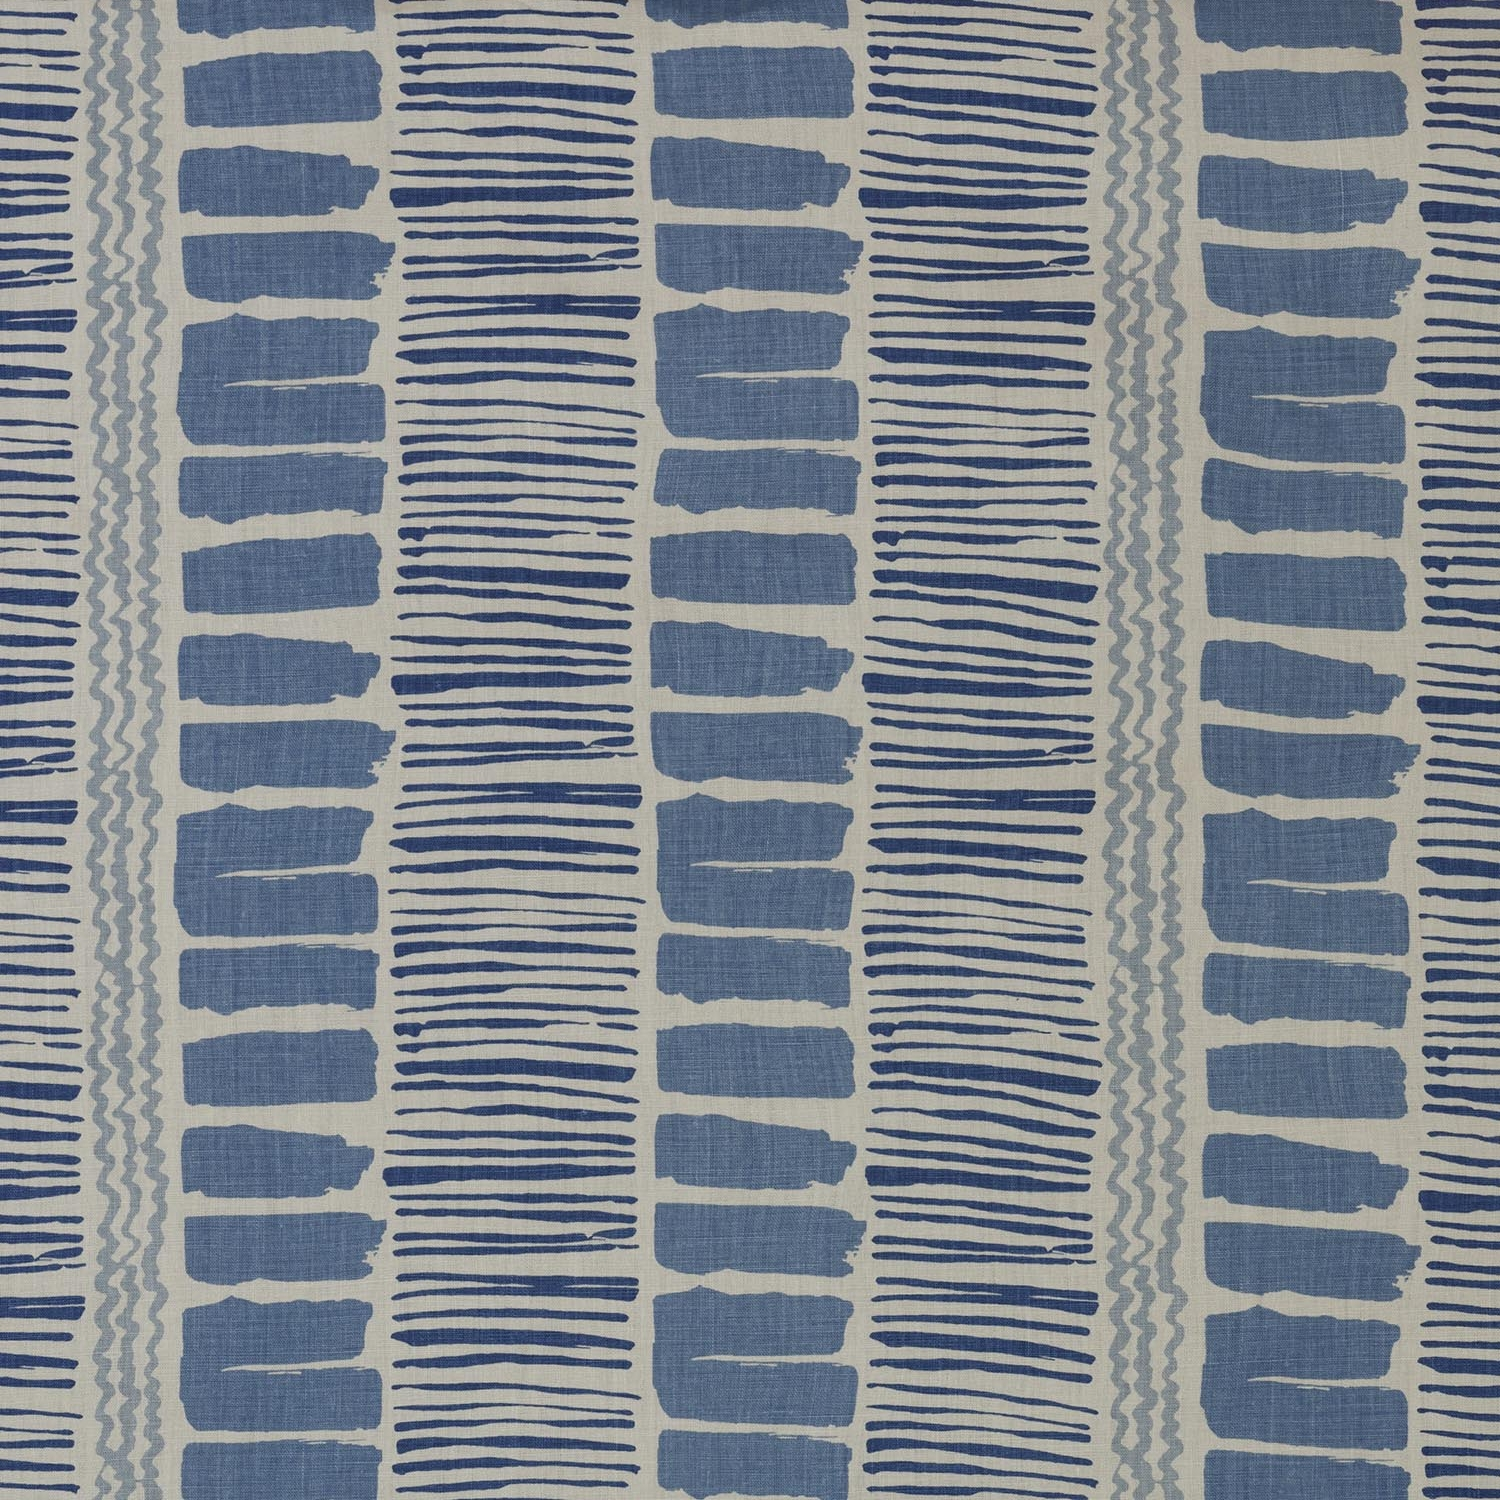 Copy of <p><strong>SALTAIRE</strong>blue 4450-05<a href=/the-winthorp-collection/saltaire-blue-4450-05>More →</a></p>